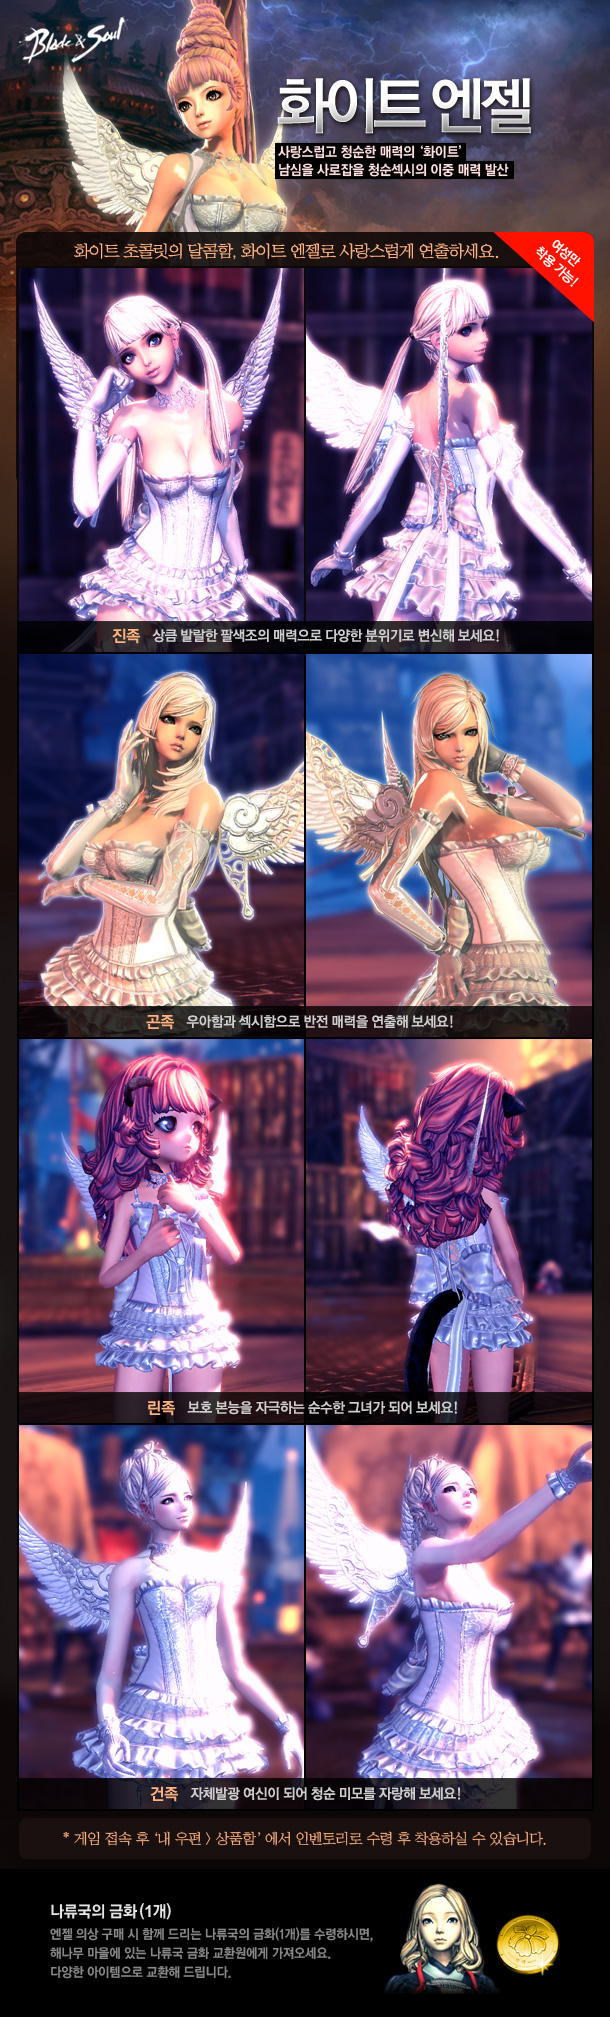 bombur games game they that this type because team server little also most changed these garner being reputation unless equivalent really hackerexploiter exist korean dont each types tied player problems their koran implement incentive shenanigans theres those changes korea outside success isnt smashing hood likely development track behavior from general back